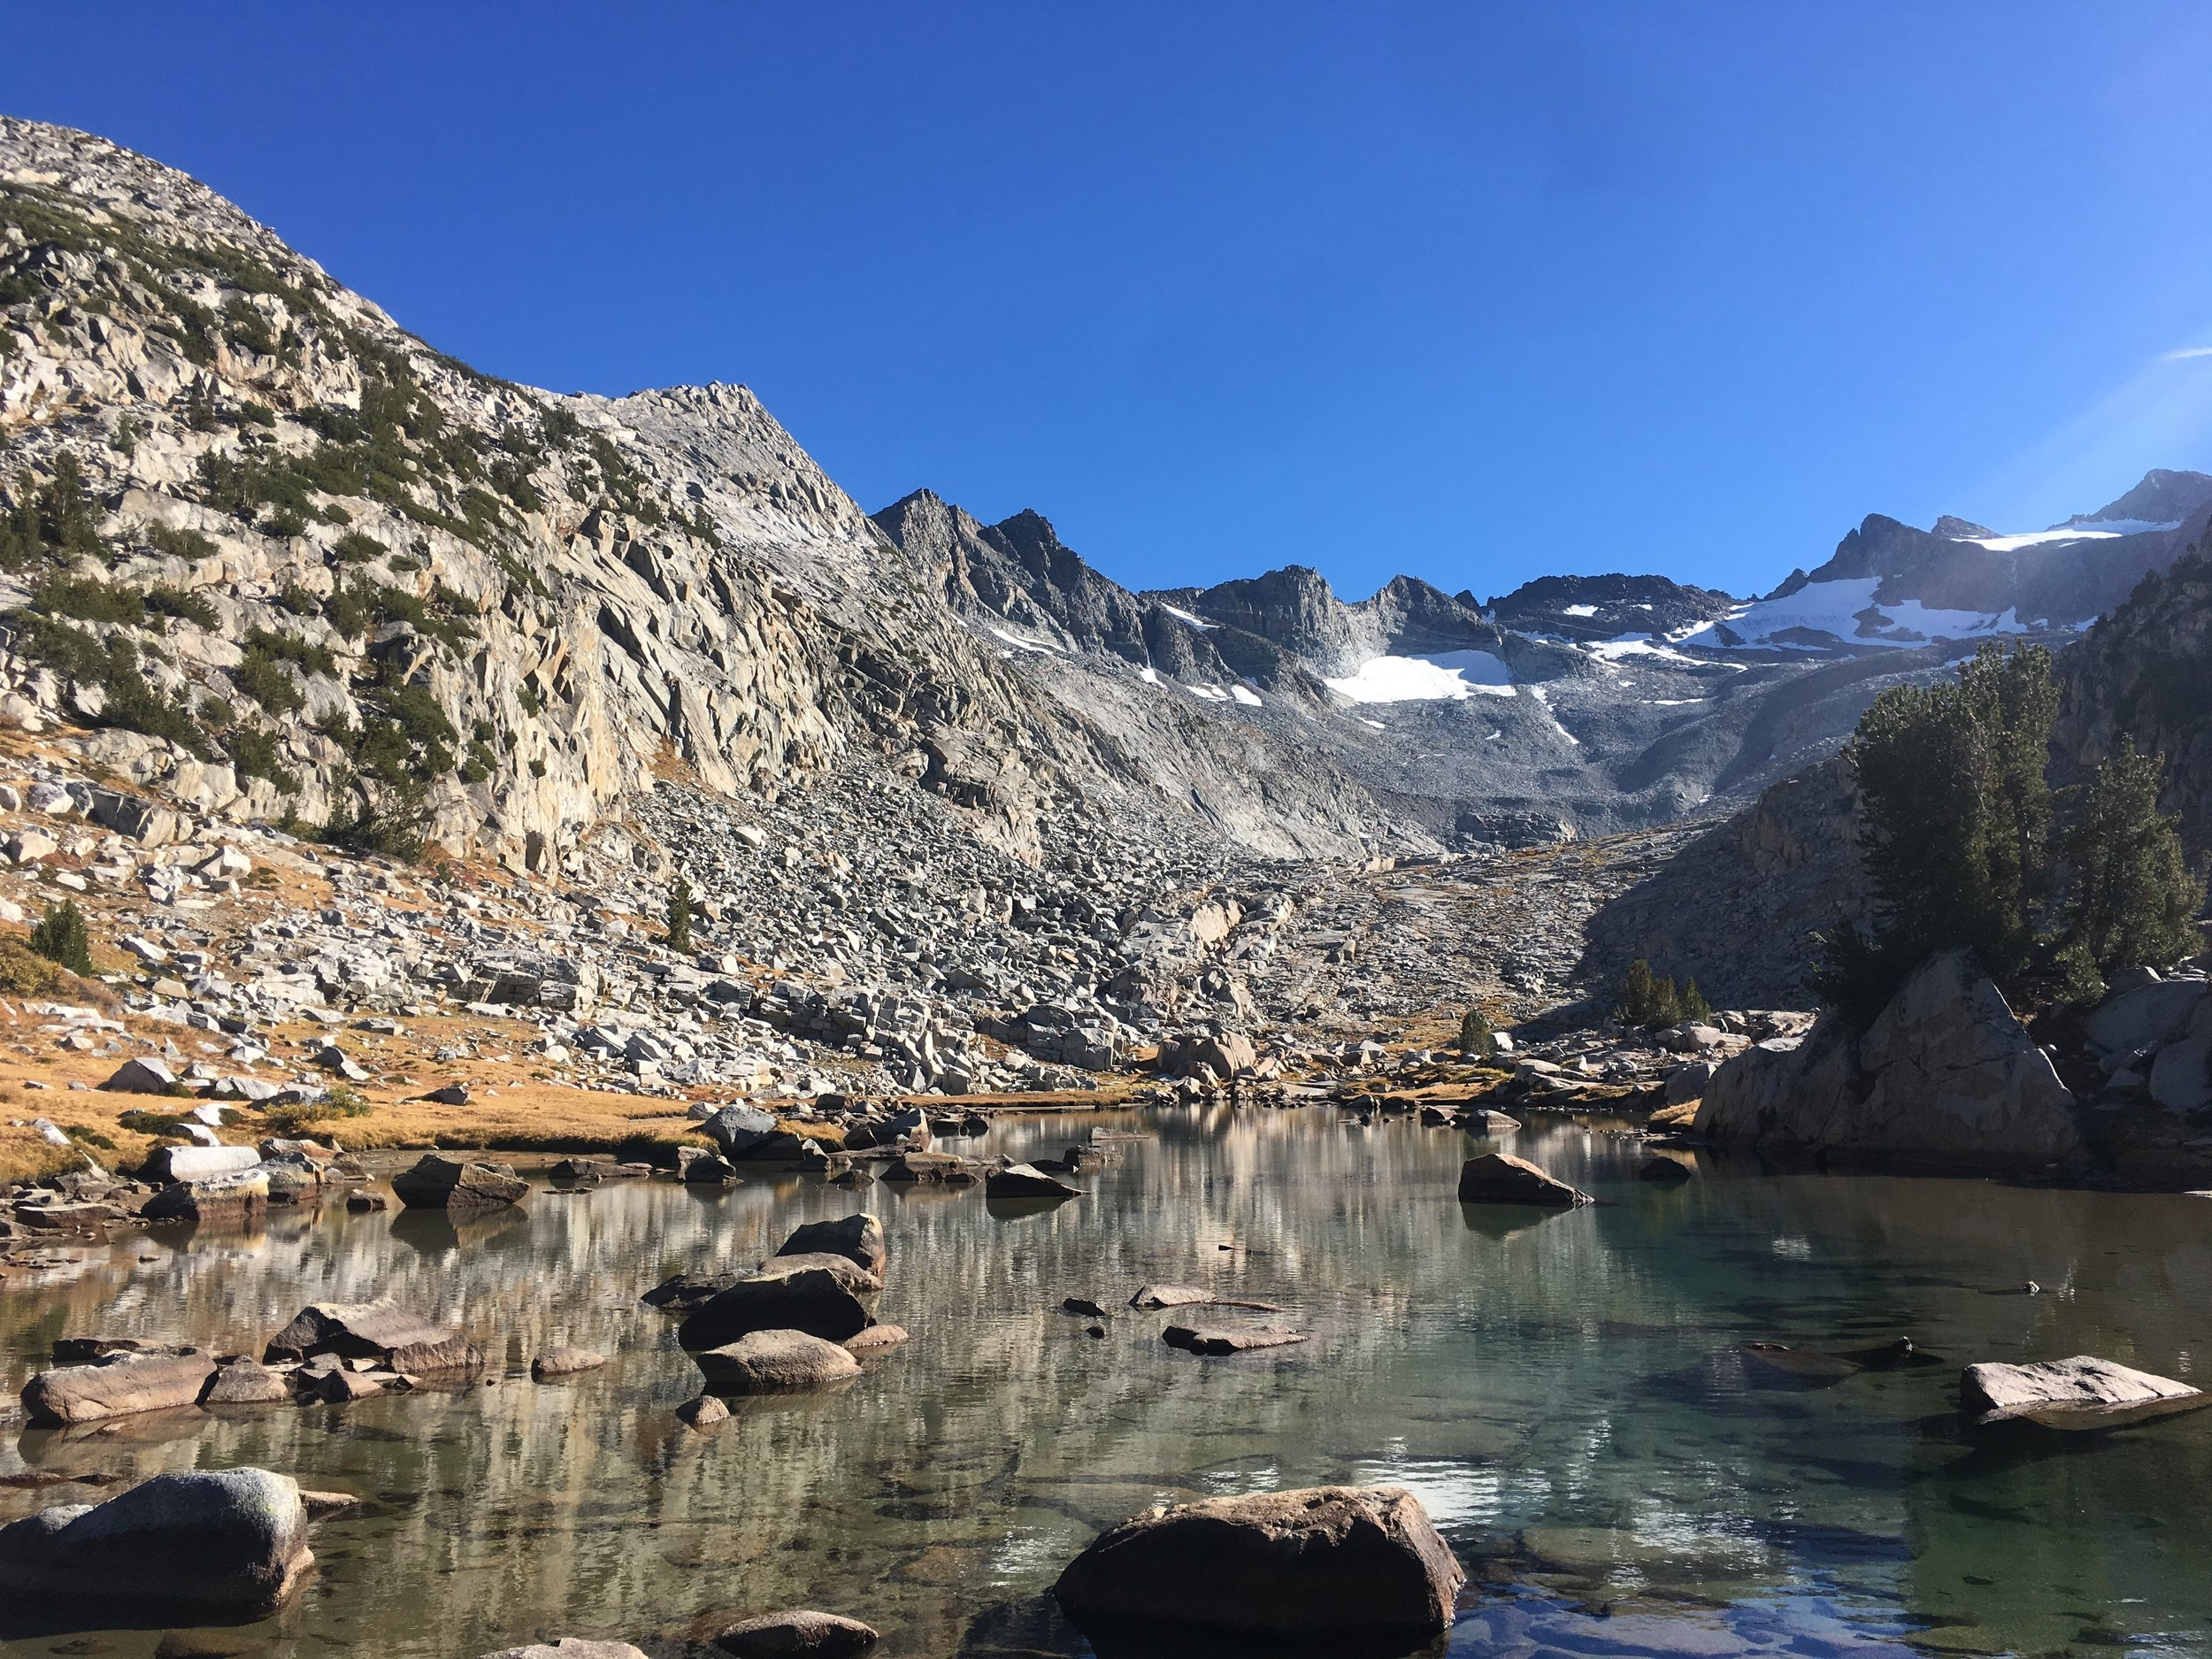 Our final crossing of the Lyell Fork before heading over Donahue Pass.